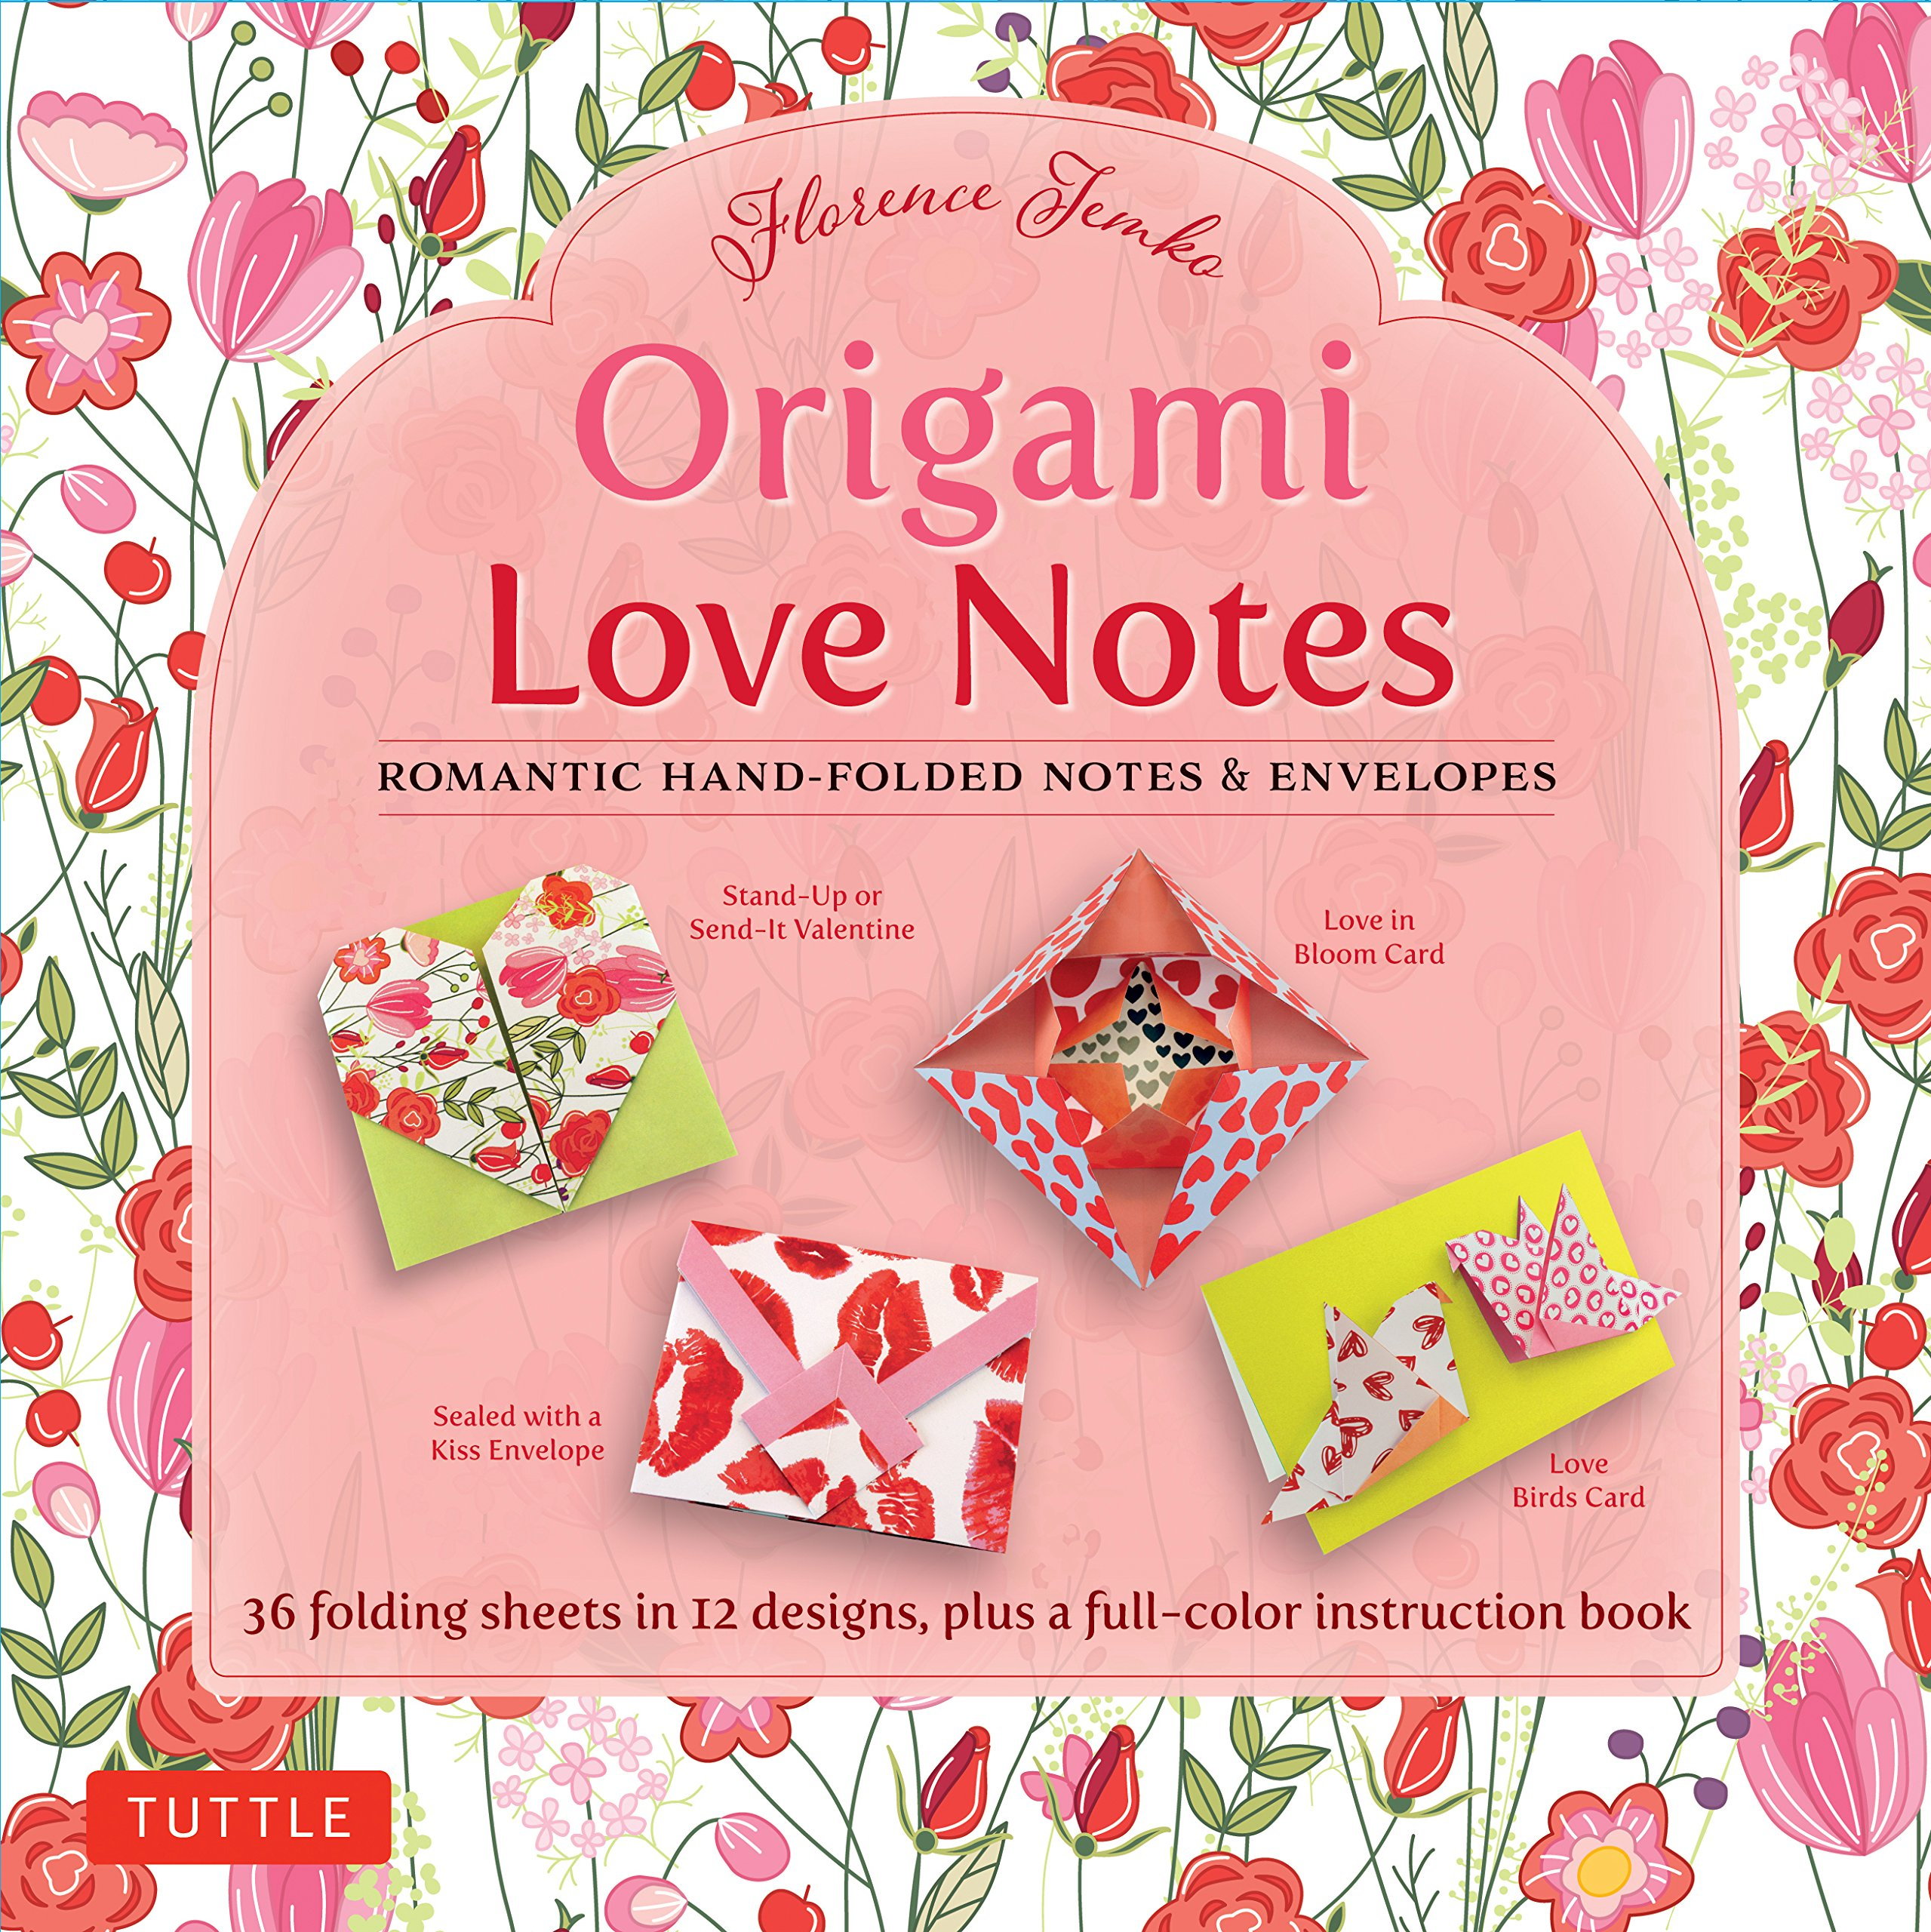 Amazon Origami Love Notes Kit Romantic Hand Folded Envelopes With Book 12 Original Projects And 36 High Quality Papers